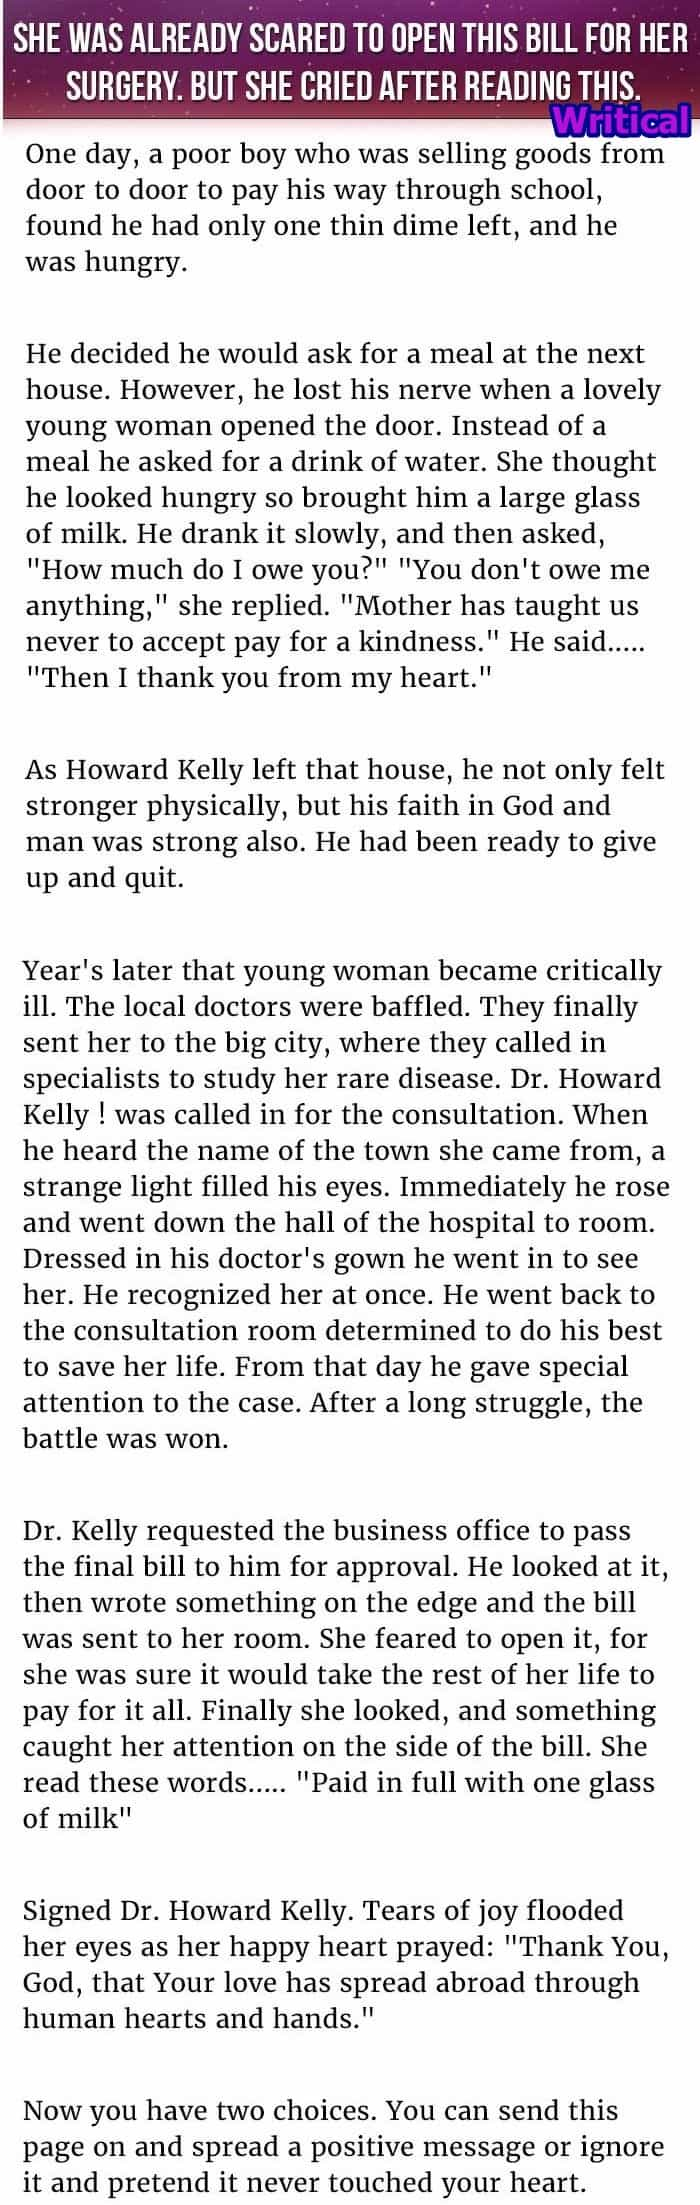 Woman kind act helped her in later years